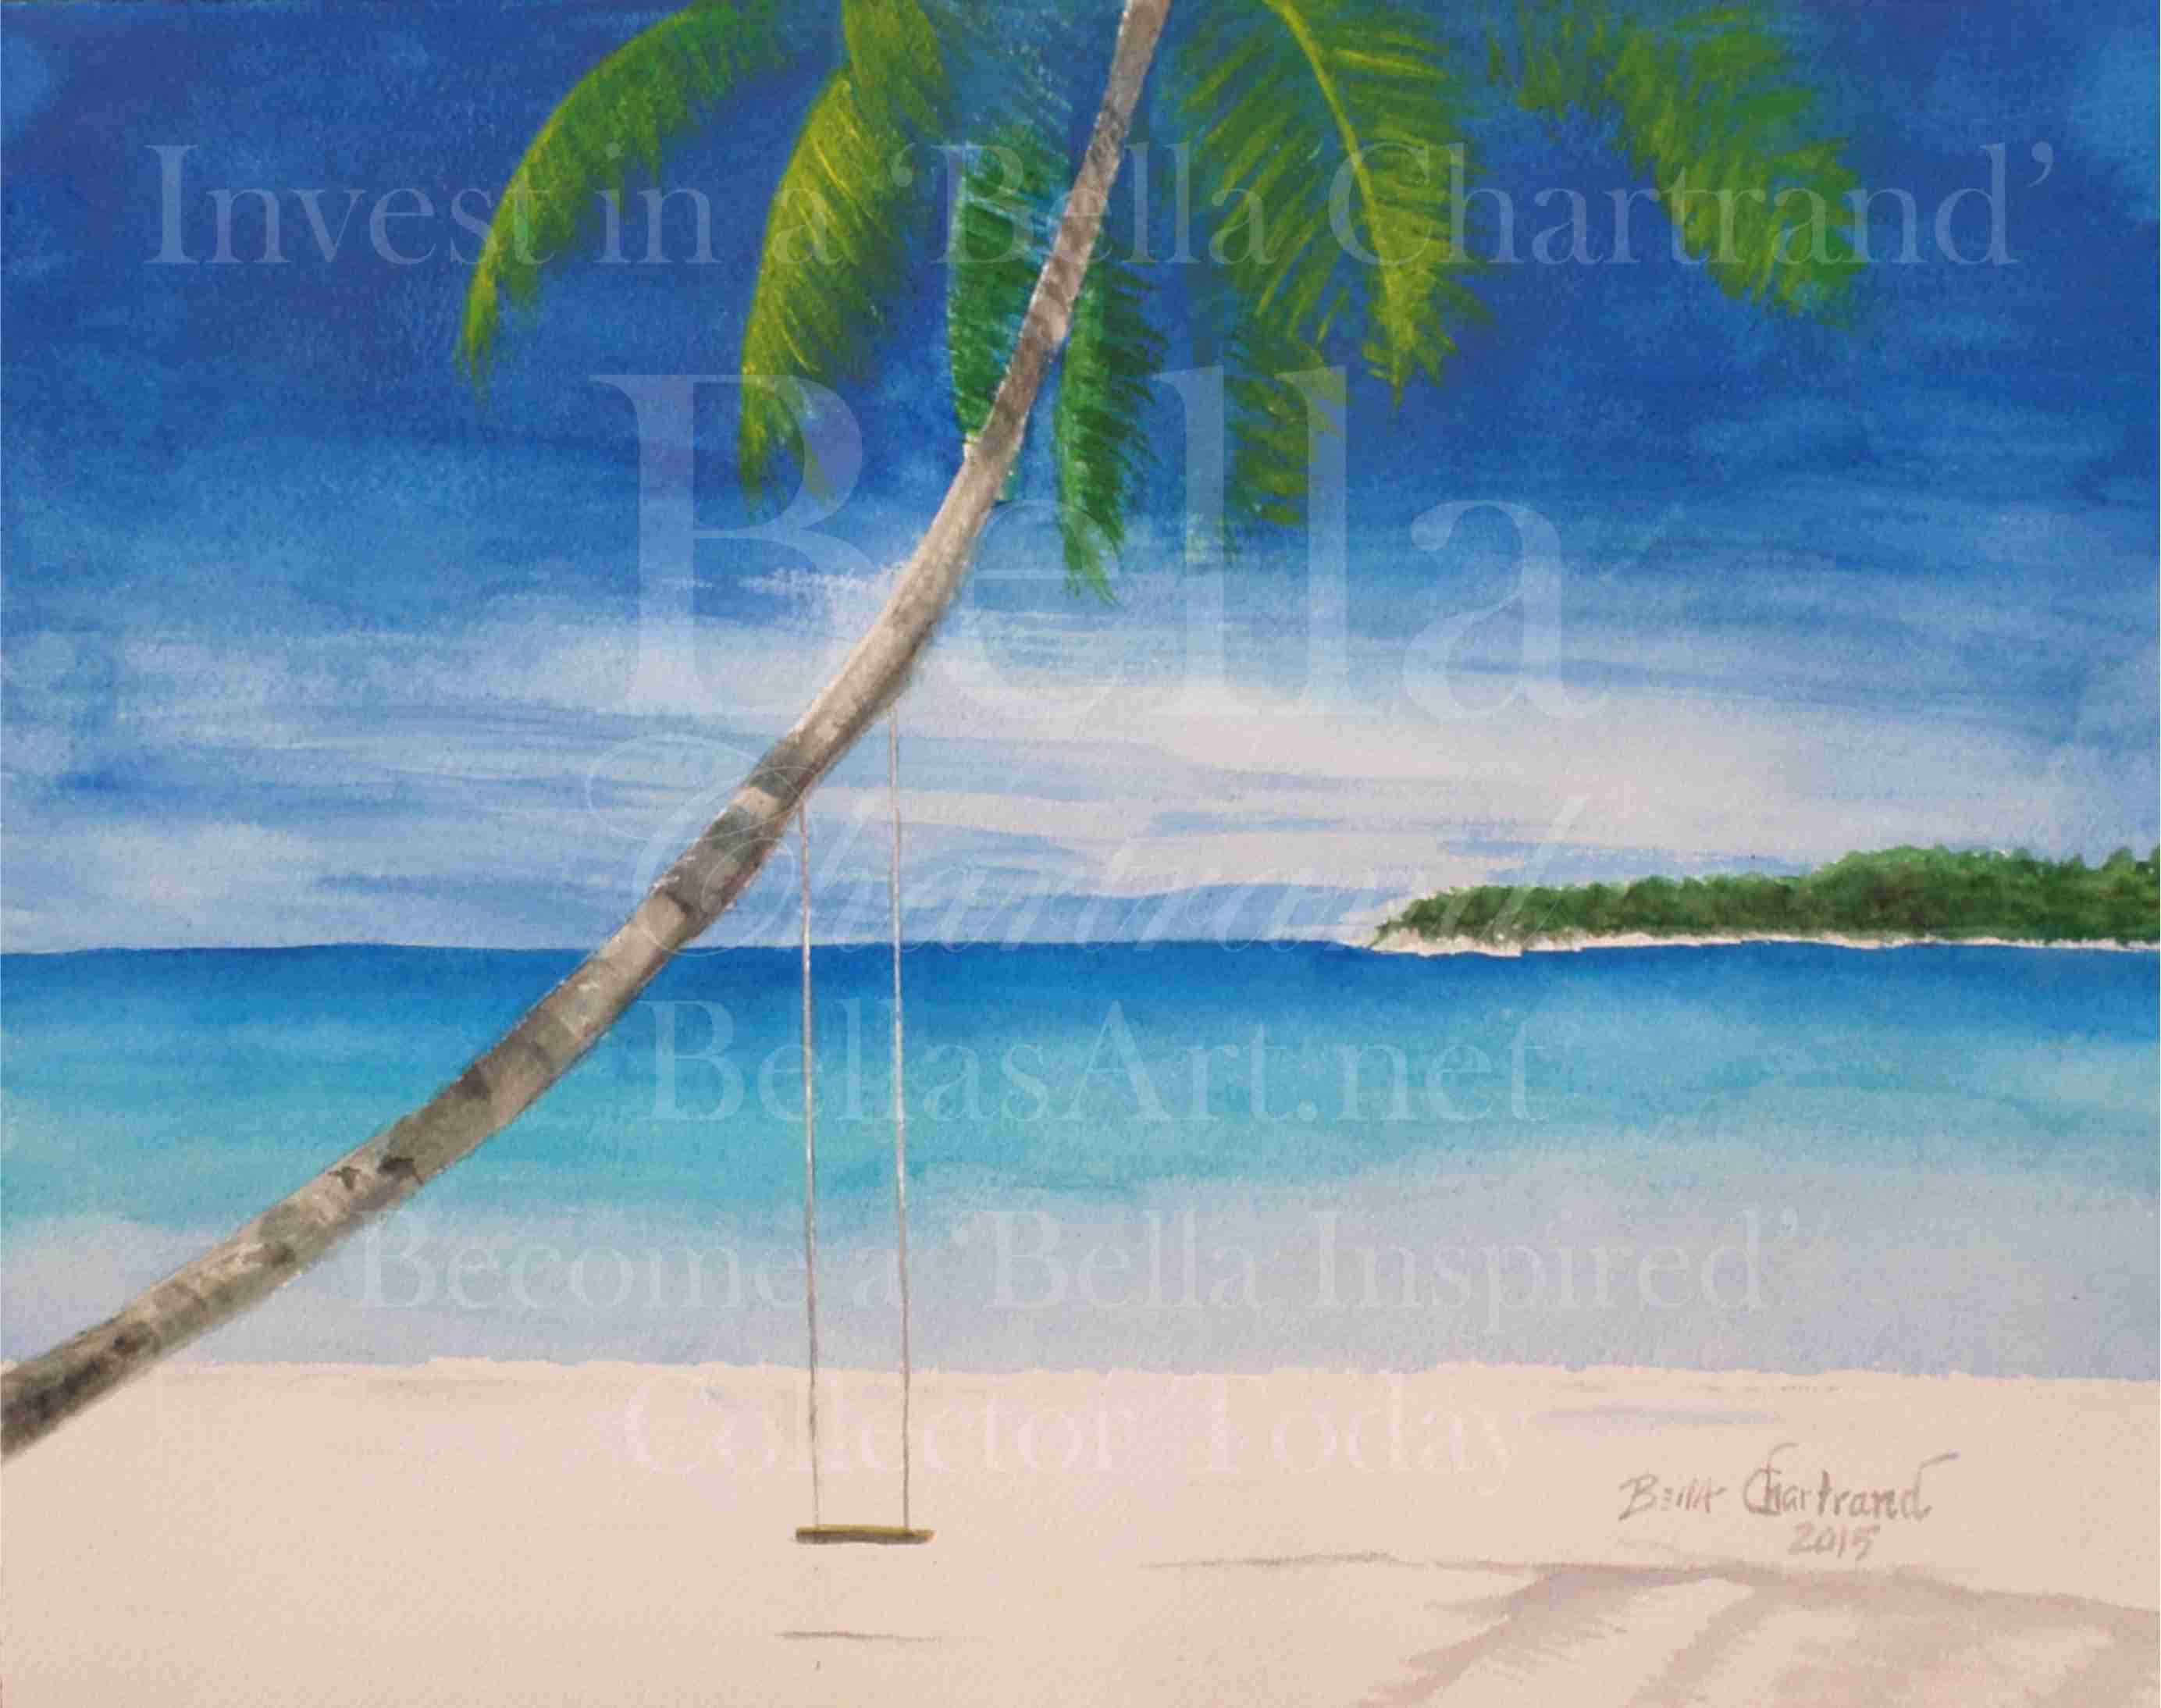 Beach Perch from Bella Inspired Seascape Collection by Bella Chartrand from Utopia USA